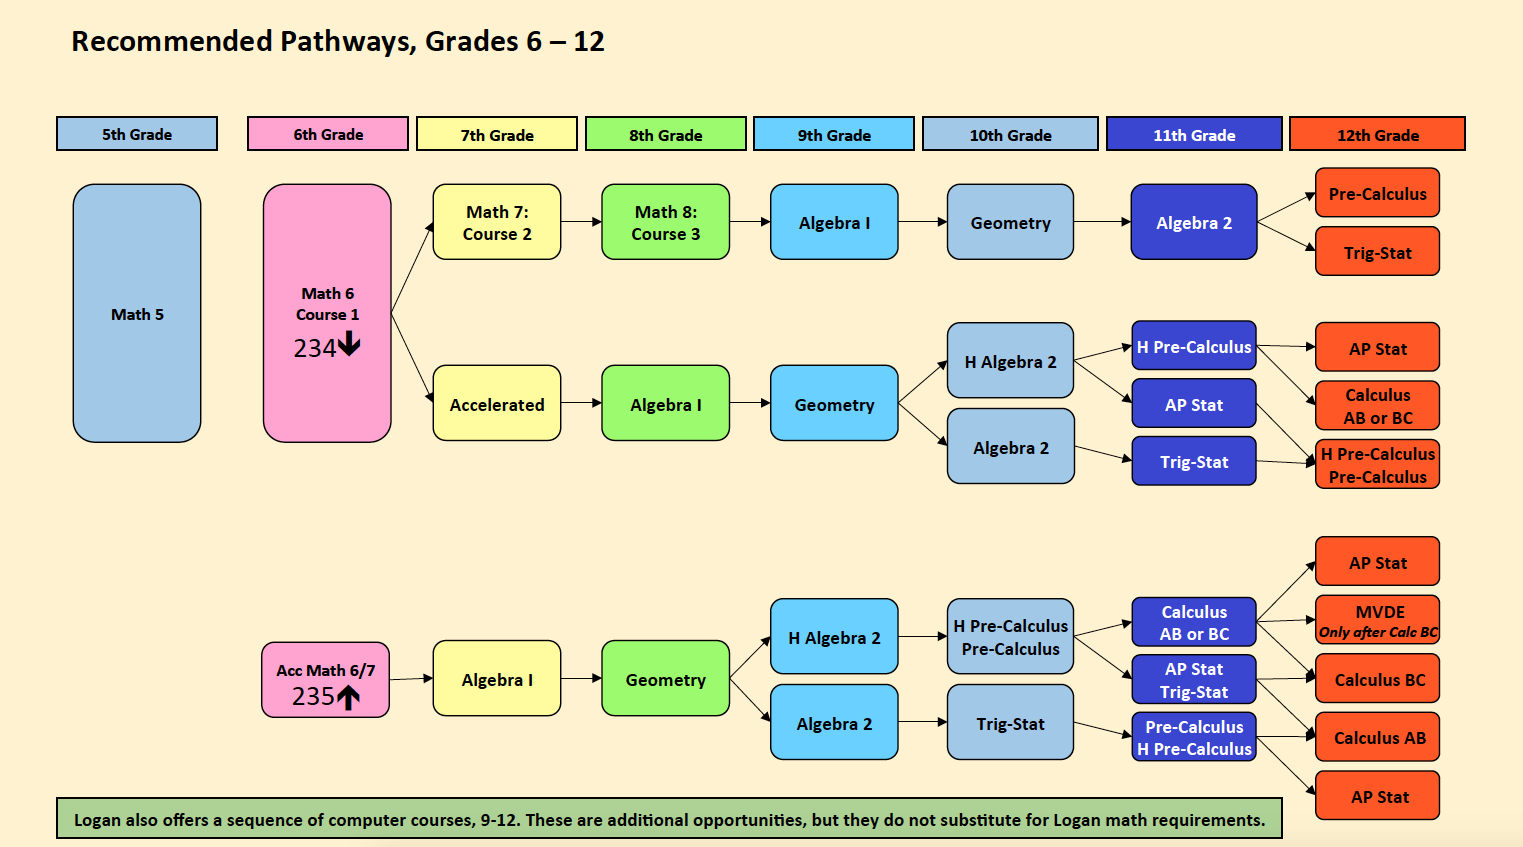 The image displays the math pathway for students in grades 6 through 12.